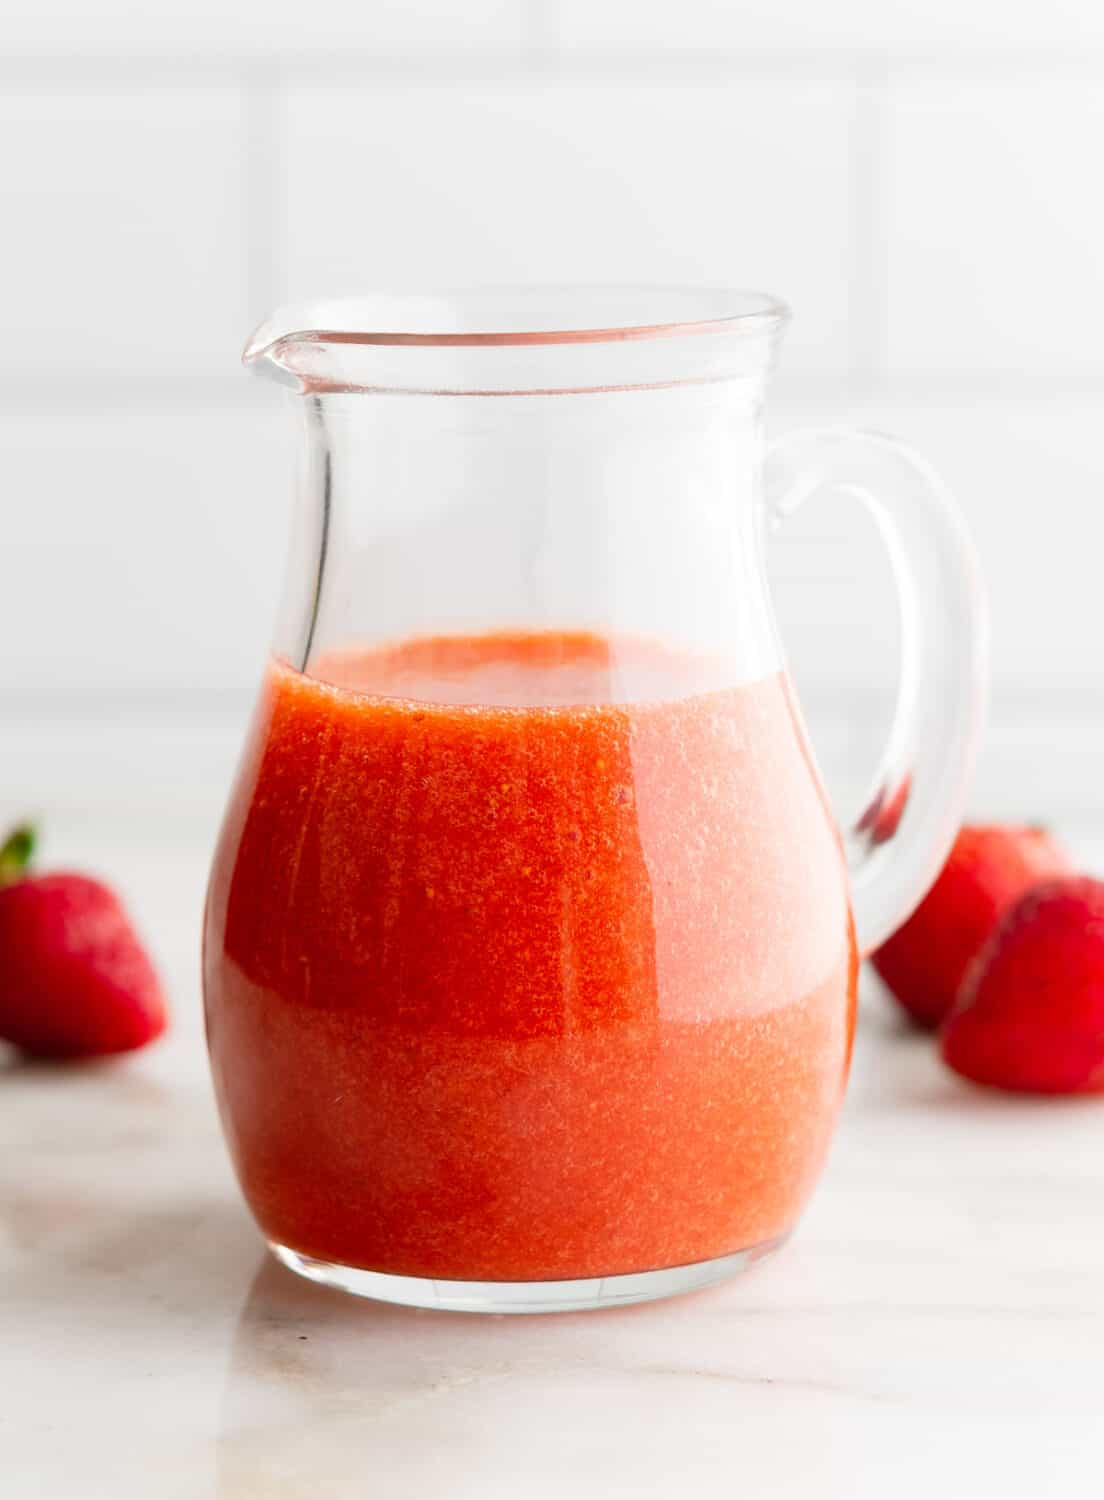 Strawberry Vinaigrette in a clear glass pitcher